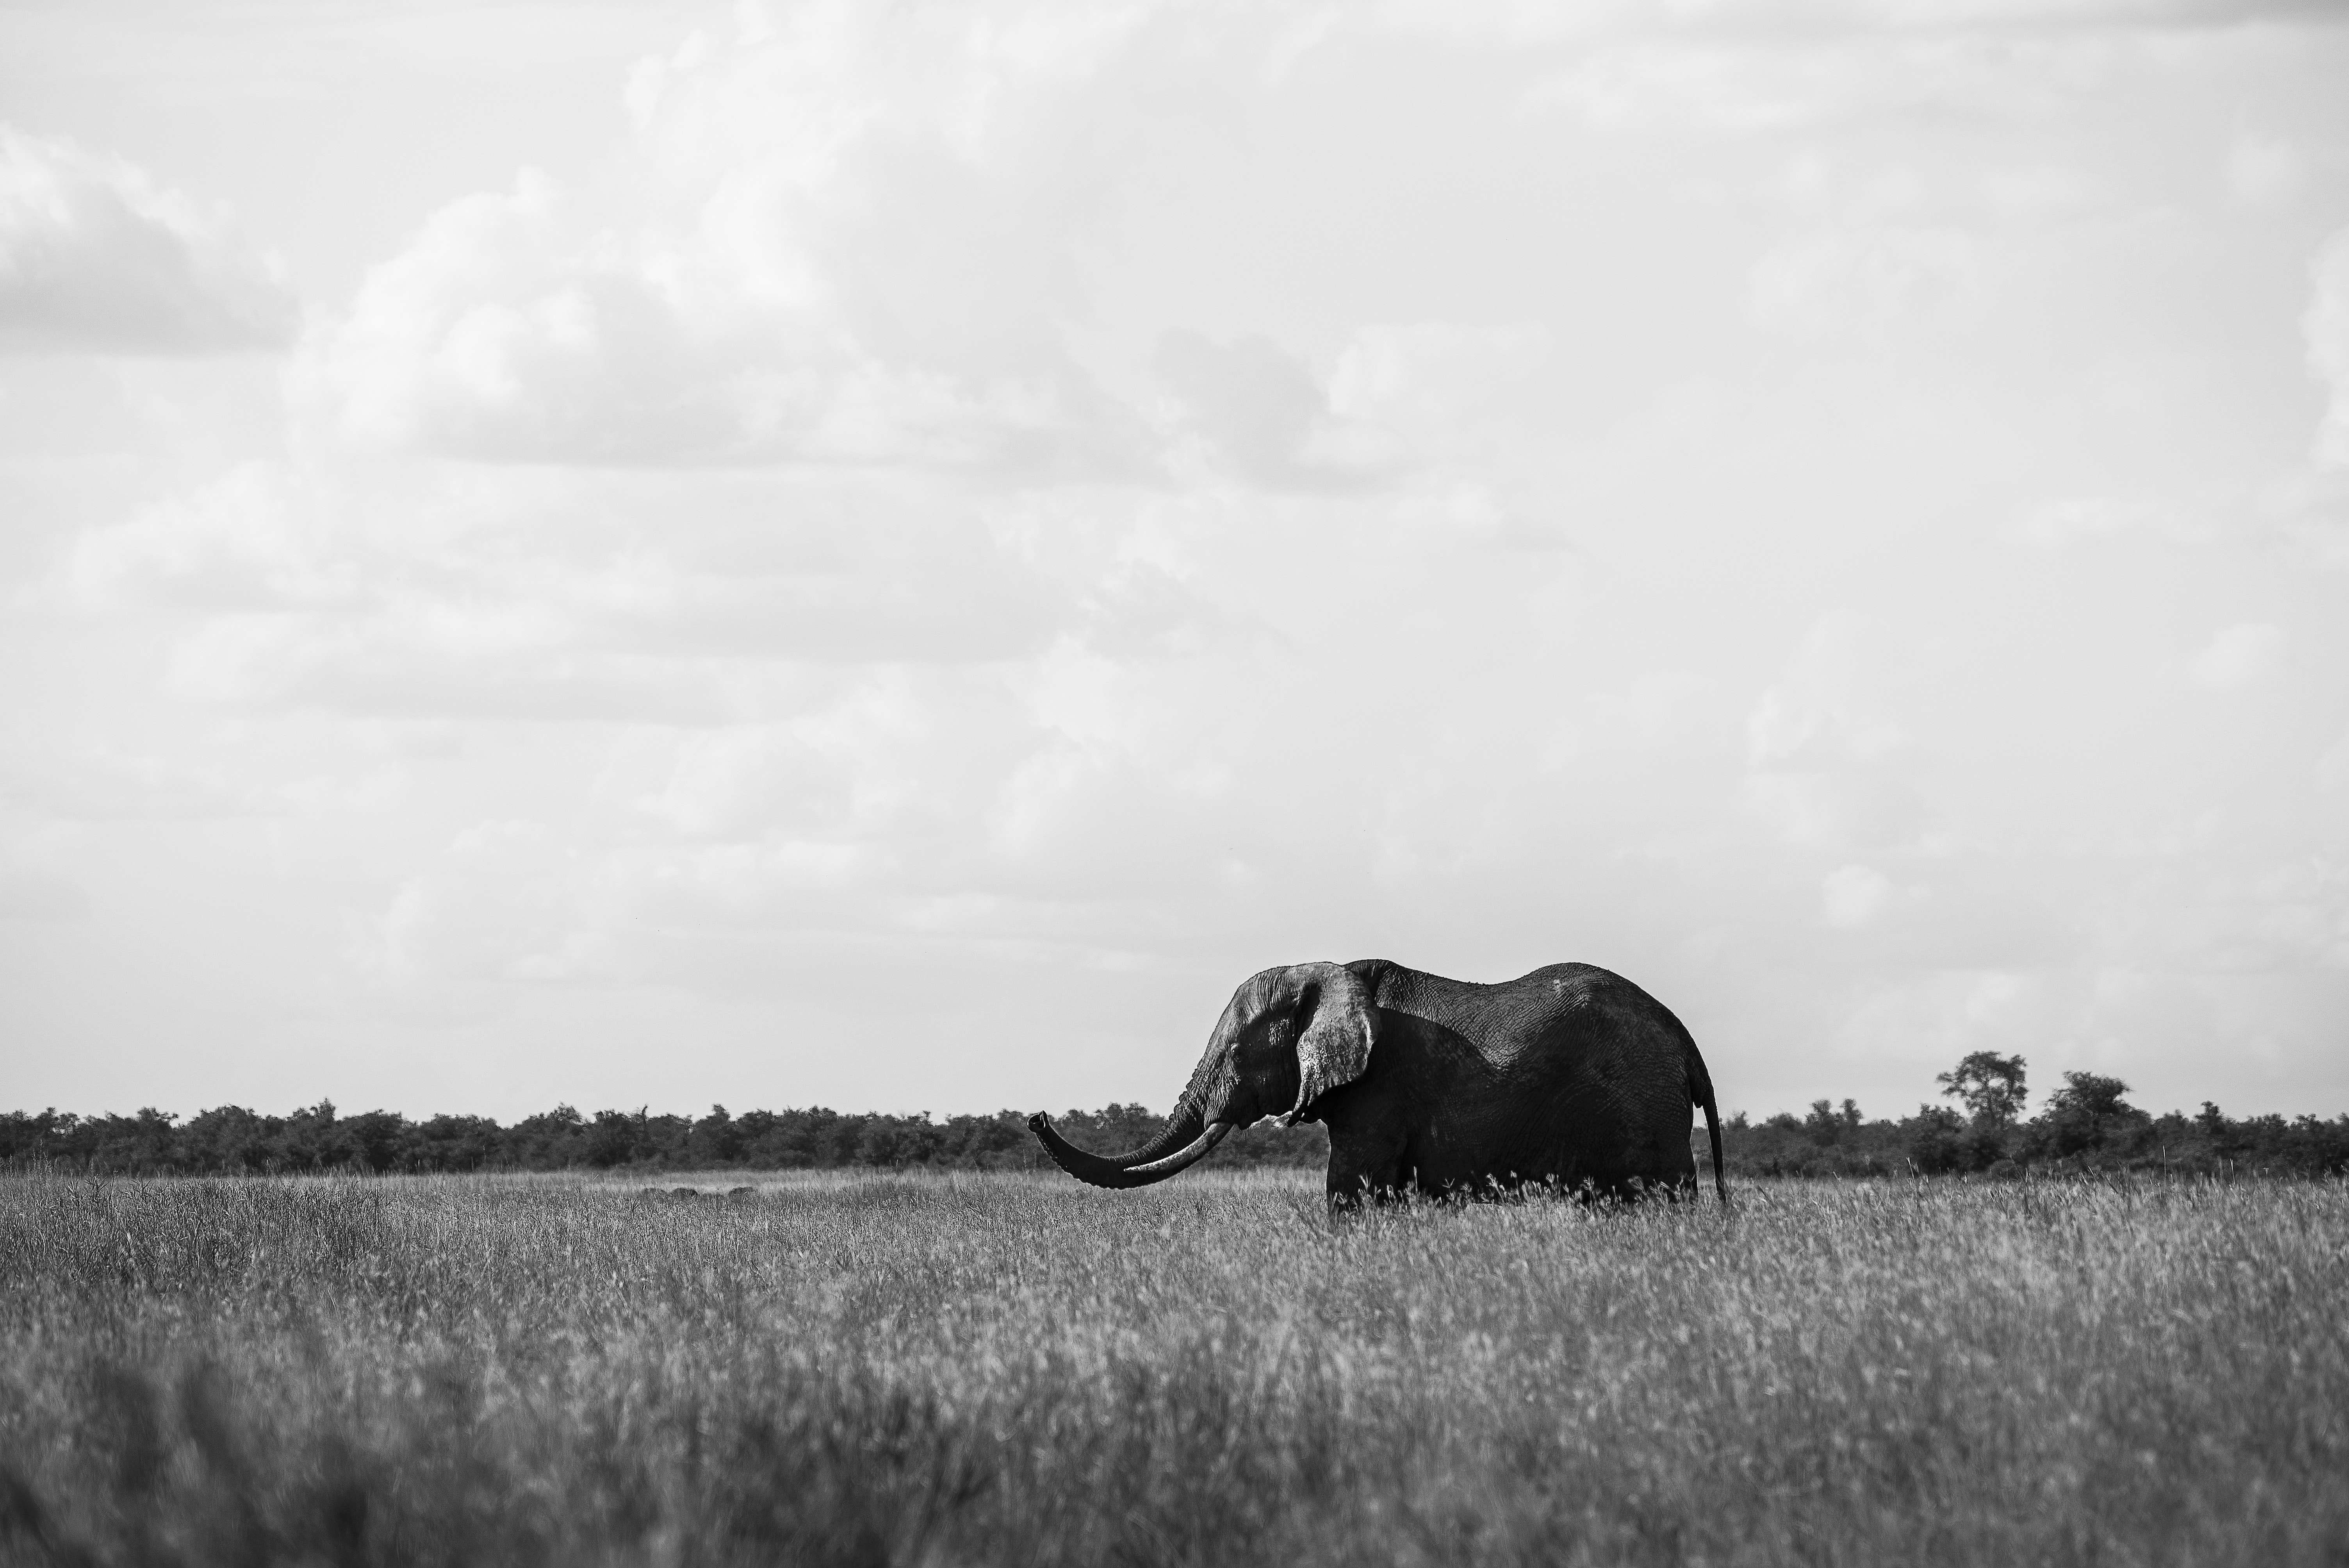 grayscale photo of elephant on grass field